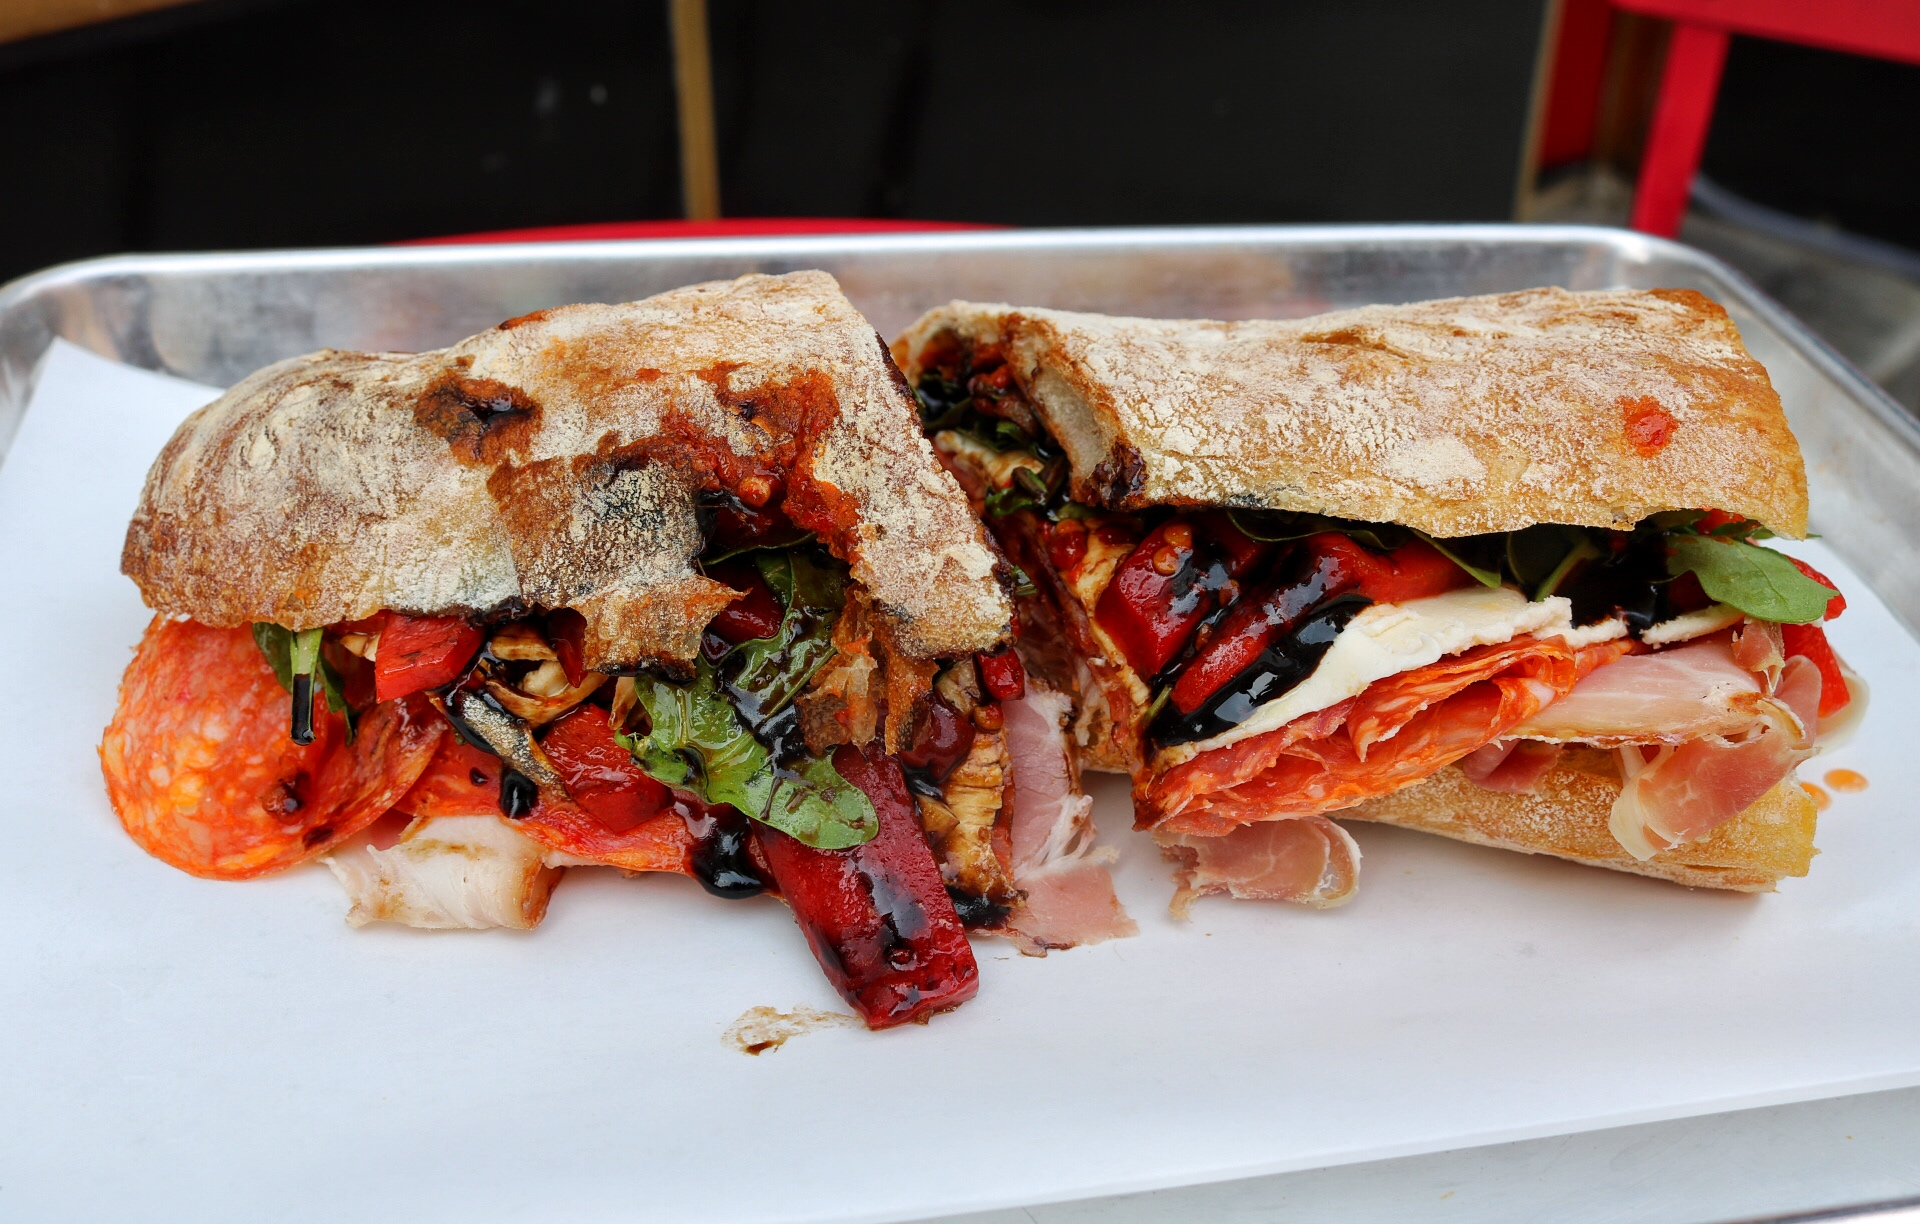 10 Best Sandwiches In Nyc 2017 The Skinny Pig